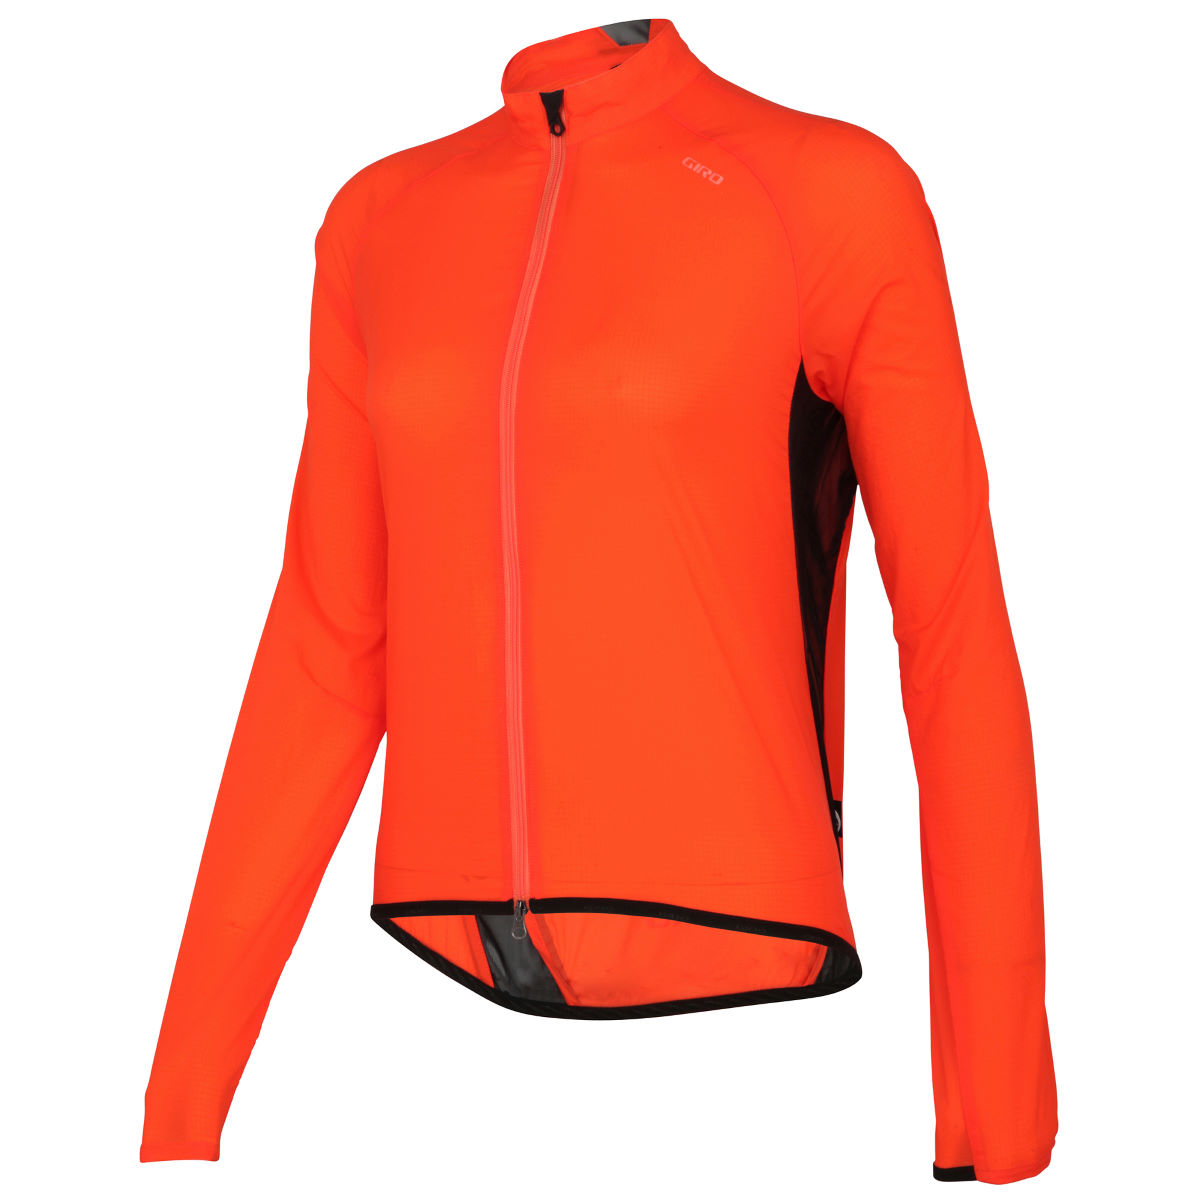 Veste Femme Giro Chrono Wind - XL Orange Coupe-vents vélo